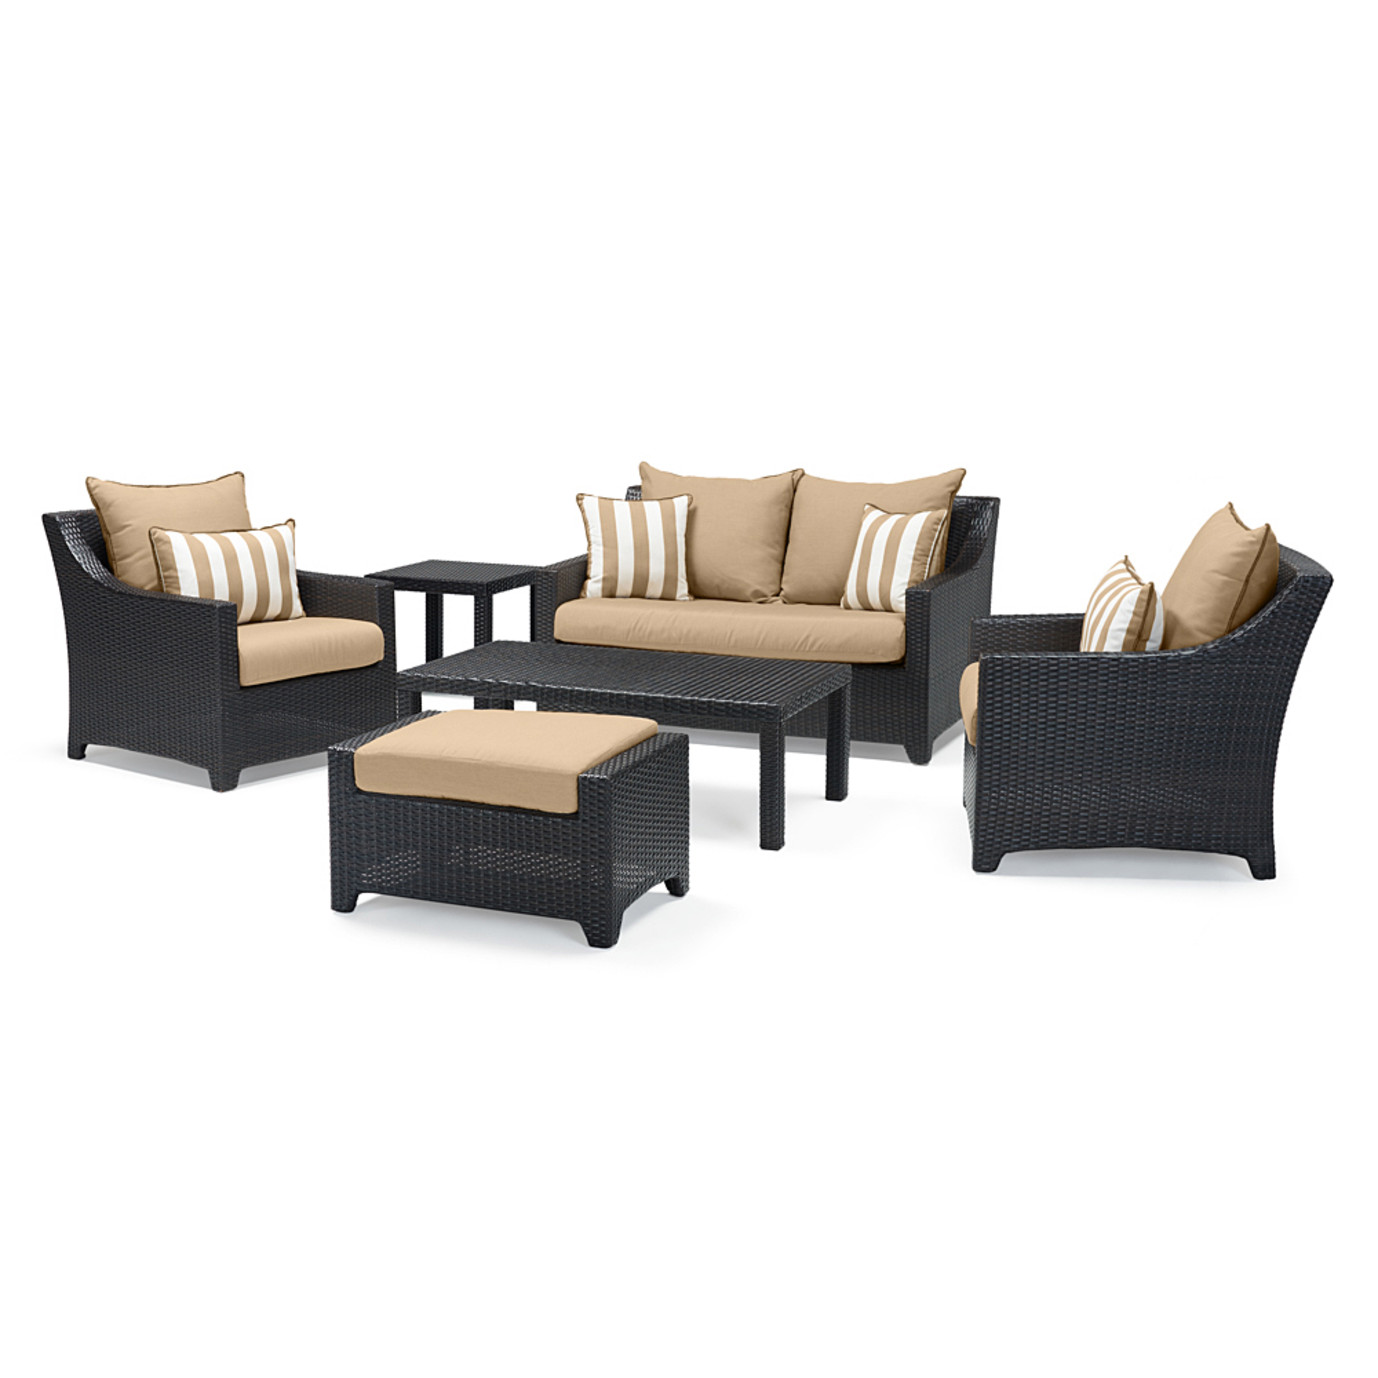 Deco™ 6pc Love & Club Seating Set - Maxim Beige